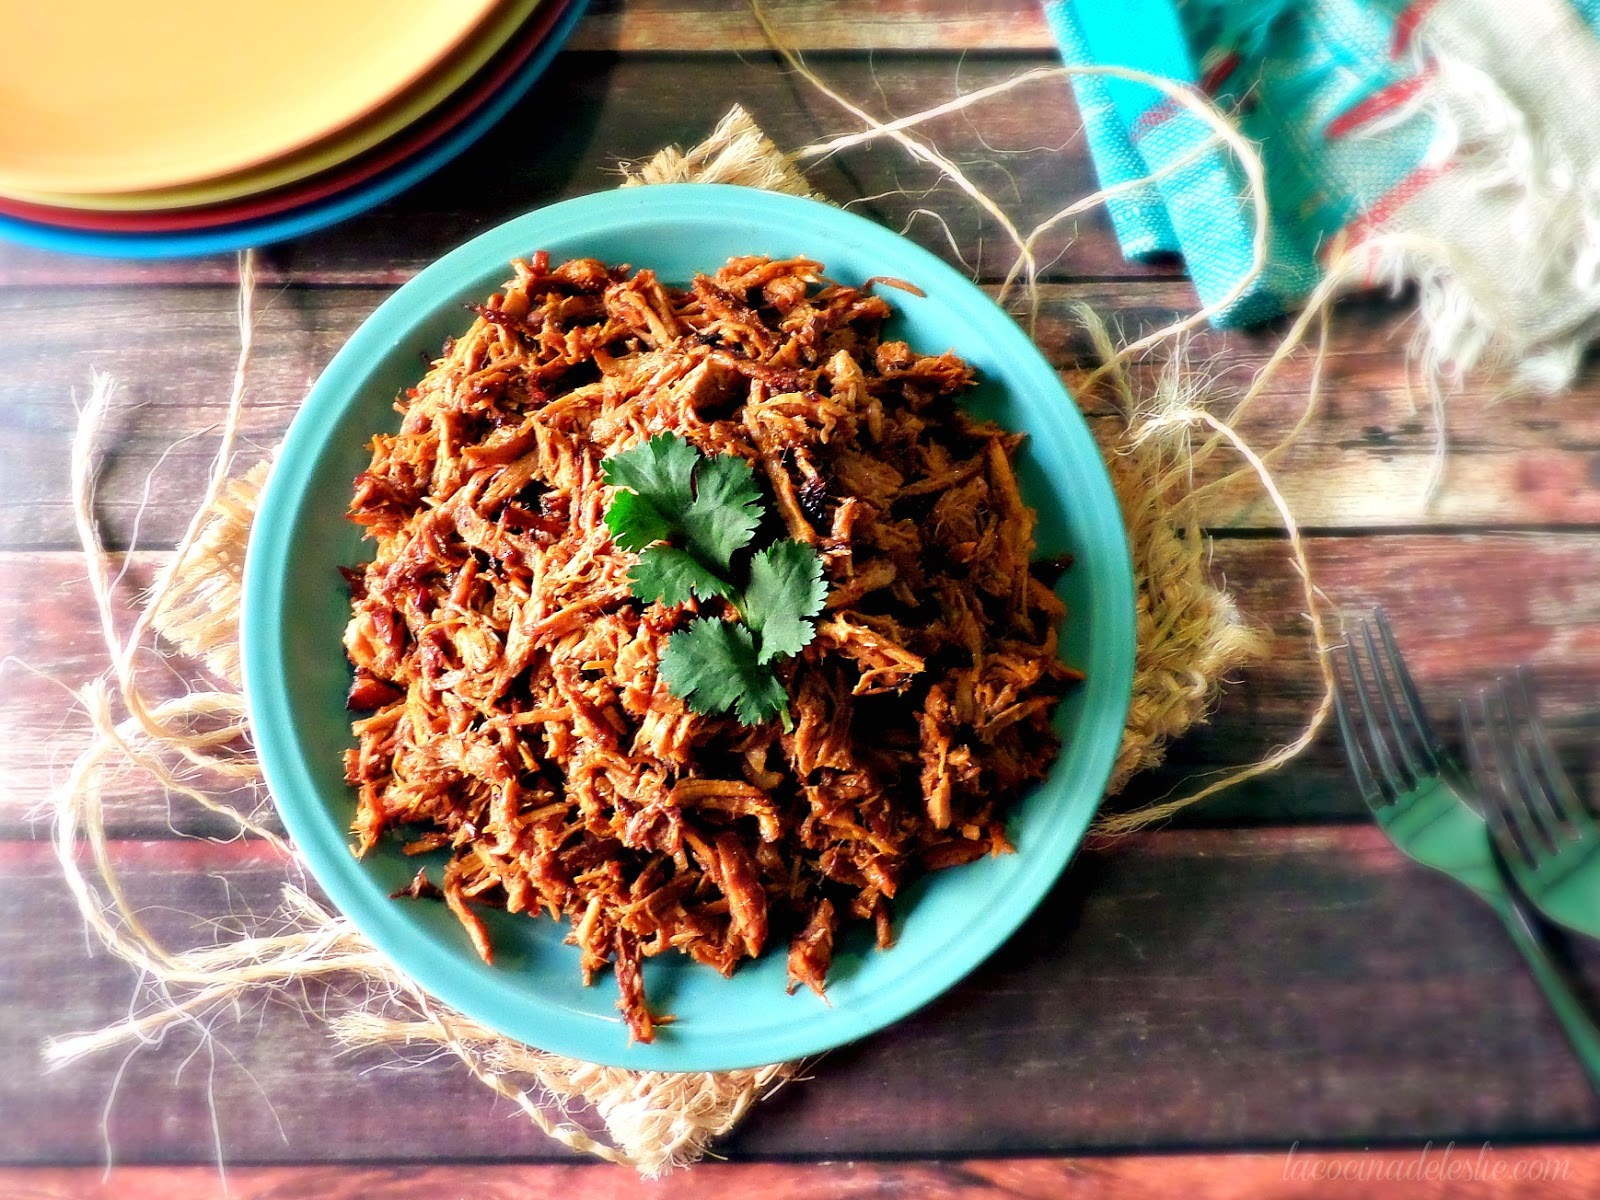 Slow Cooker Orange Chipotle Pulled Pork - lacocinadeleslie.com